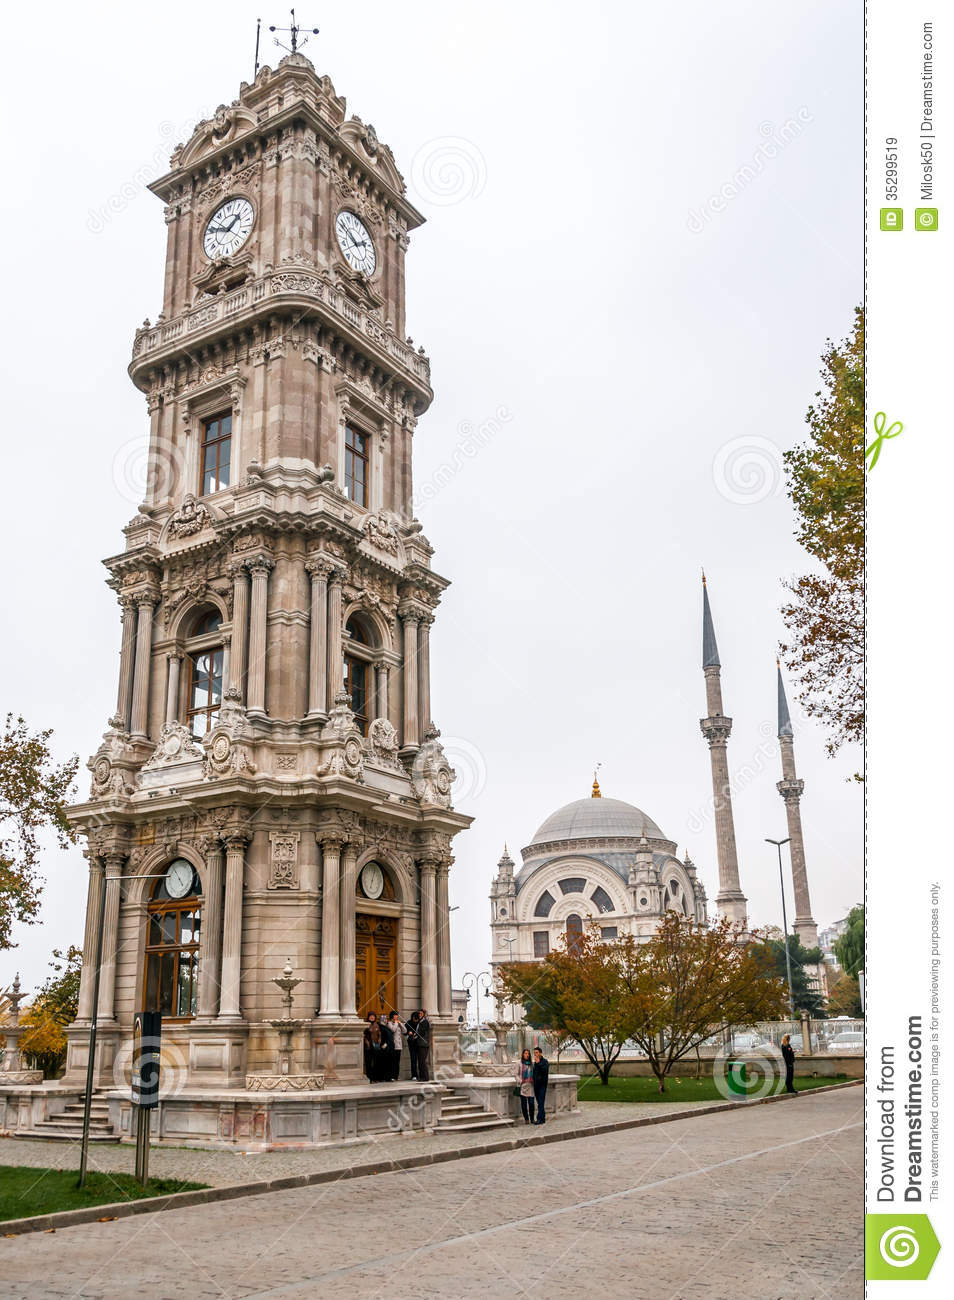 Dolmabahce Palace Clock Tower Editorial Stock Image ...